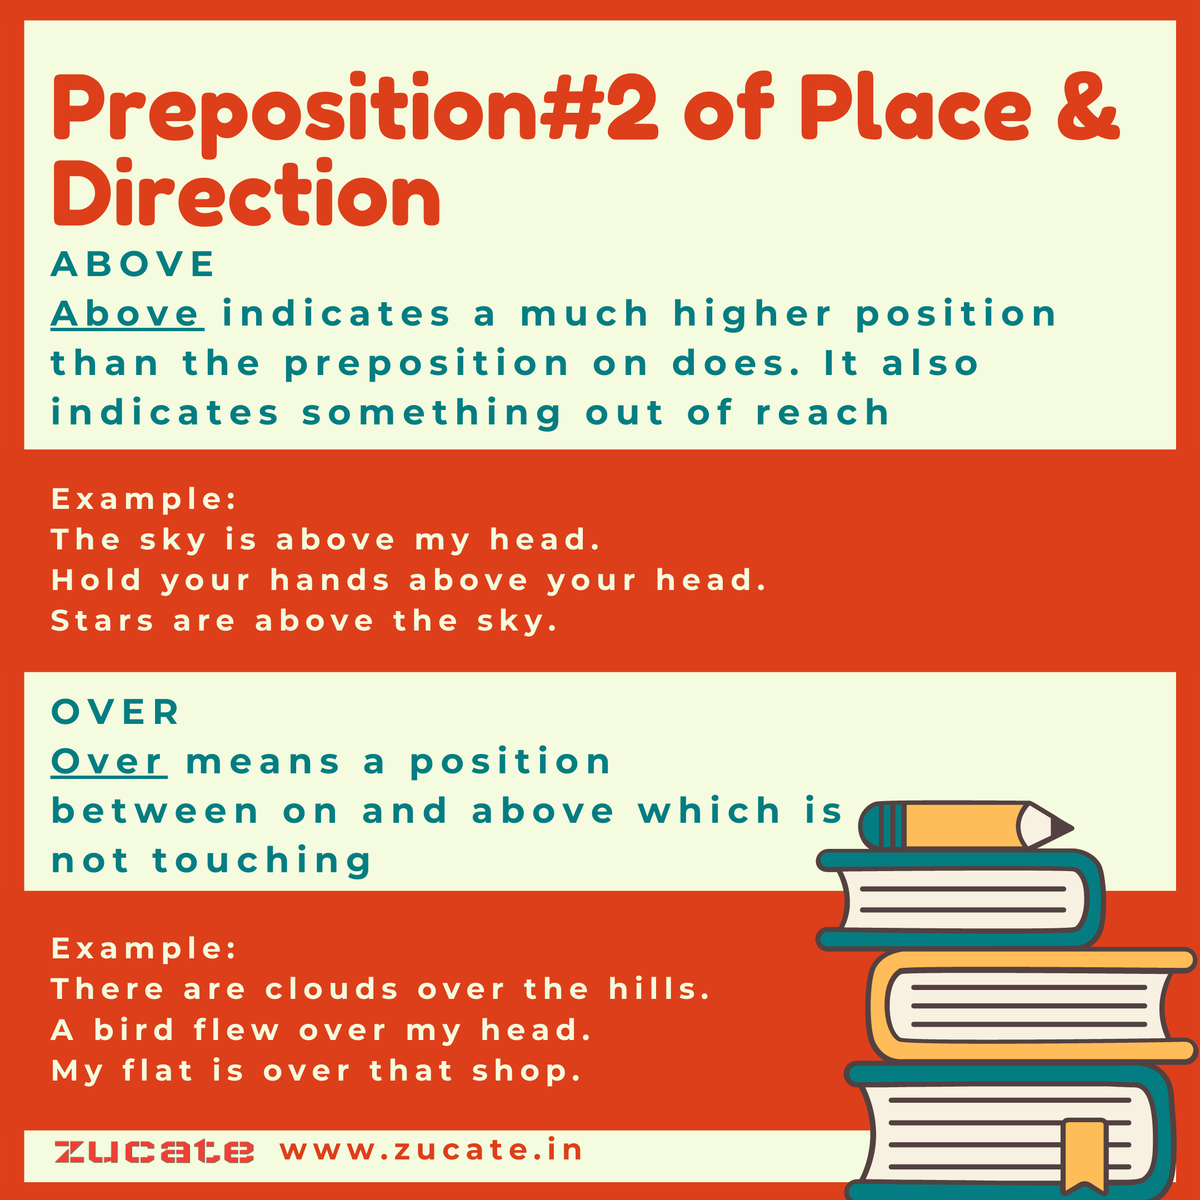 Preposition #2 of Place & Direction  #eLearning #edtech #wednesdaymorning #zucate #StudyIdeas #LearningNewThings #LearnFromHome #LockdownLife #WednesdayMotivation #MadeInIndia #learning #ZucateFacts #LearnEnglishWithZucate #elearning #learningplatform https://t.co/oeWuBk9IN7